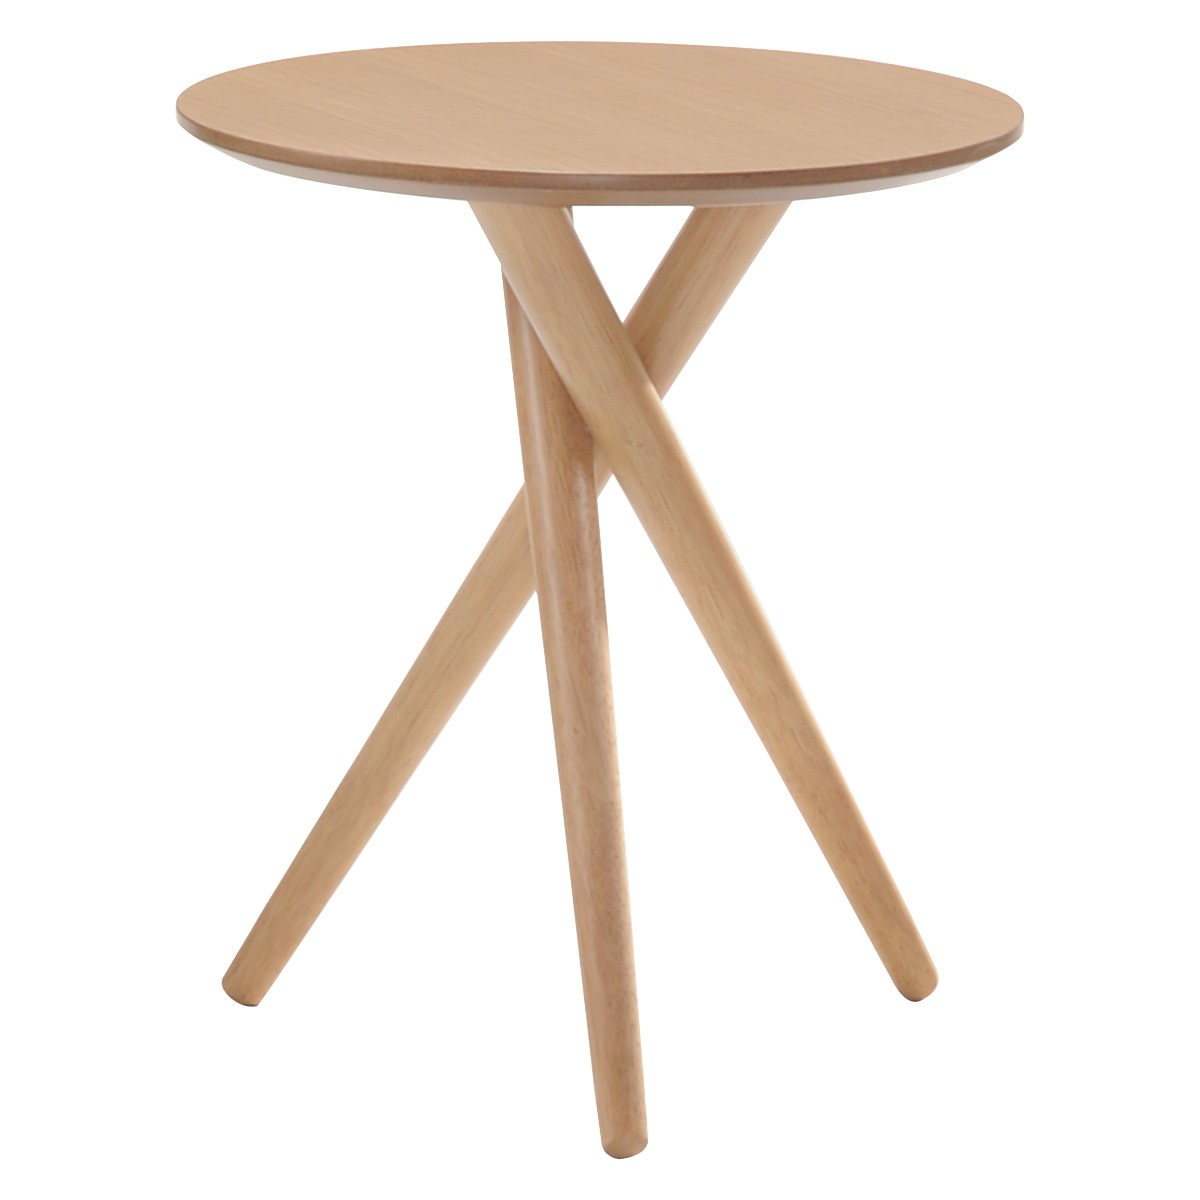 Bodie Wooden Round Side Table, Natural